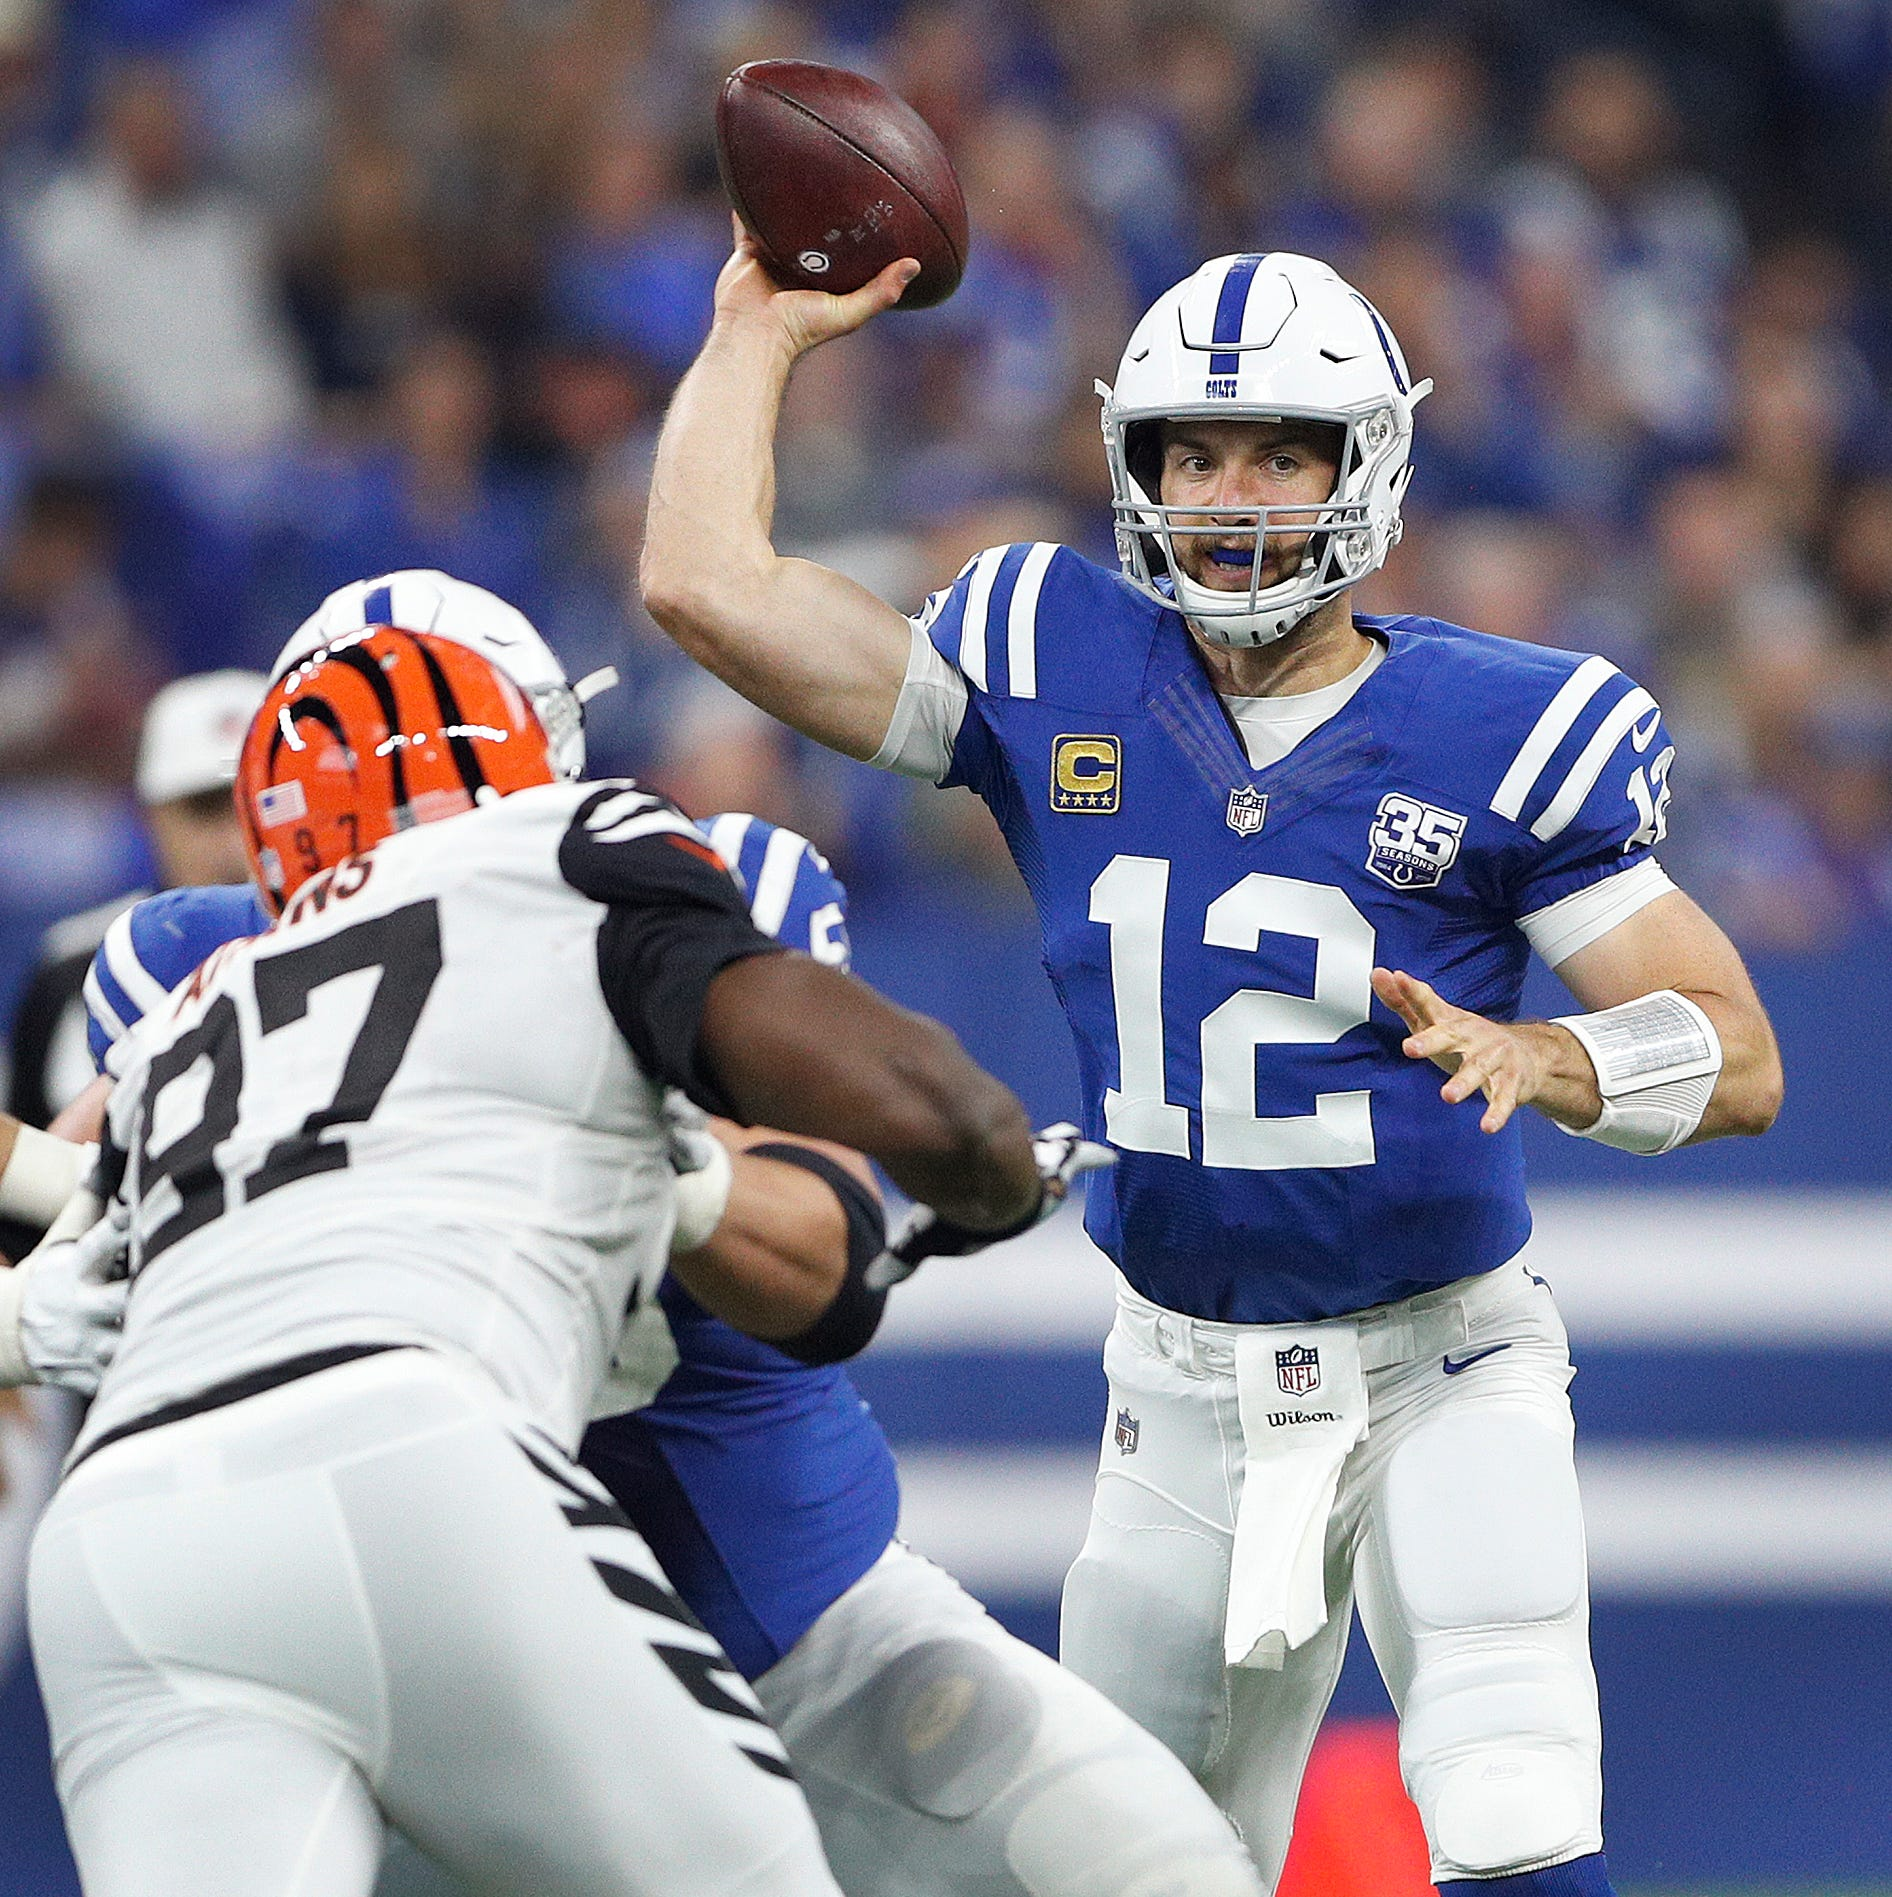 Cincinnati Bengals player fined $10,026 for hit on Indianapolis Colts QB Andrew Luck